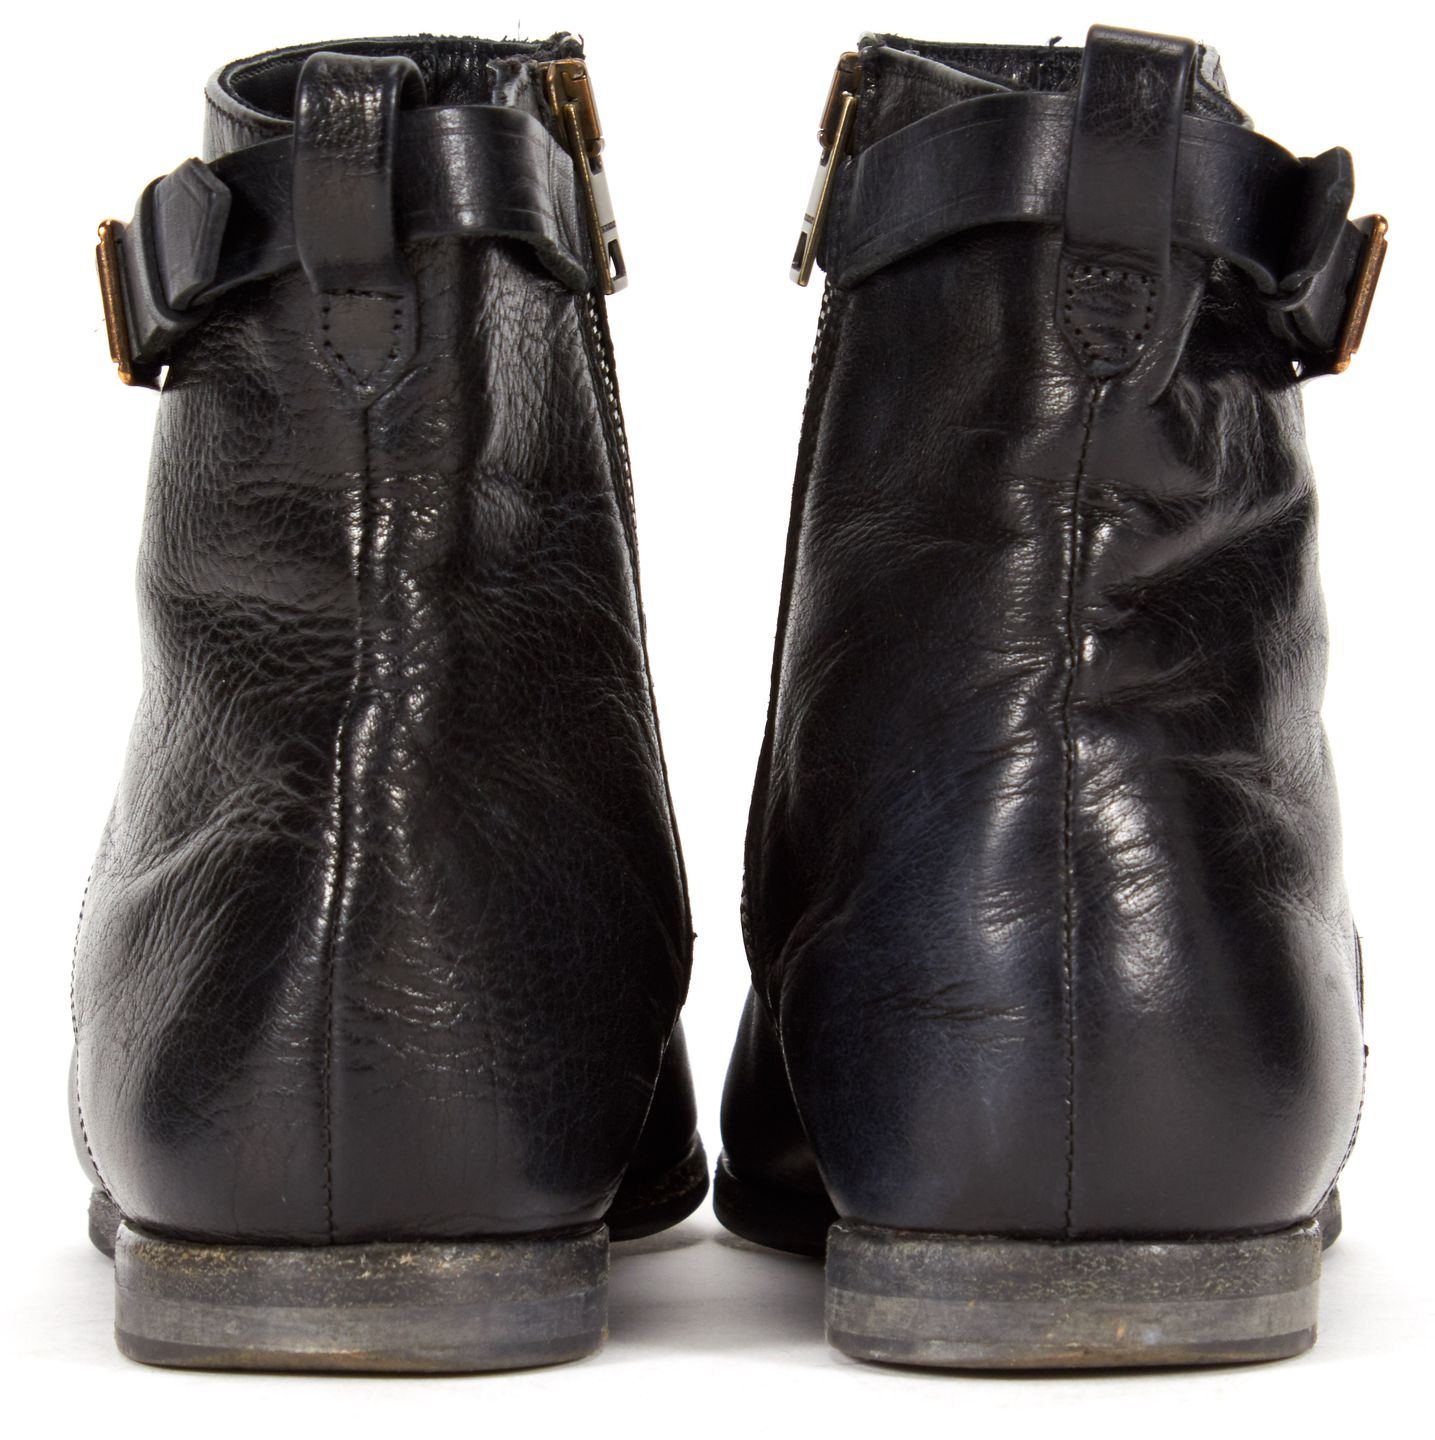 BURBERRY Black Leather Pointed Toe Ankle Boots